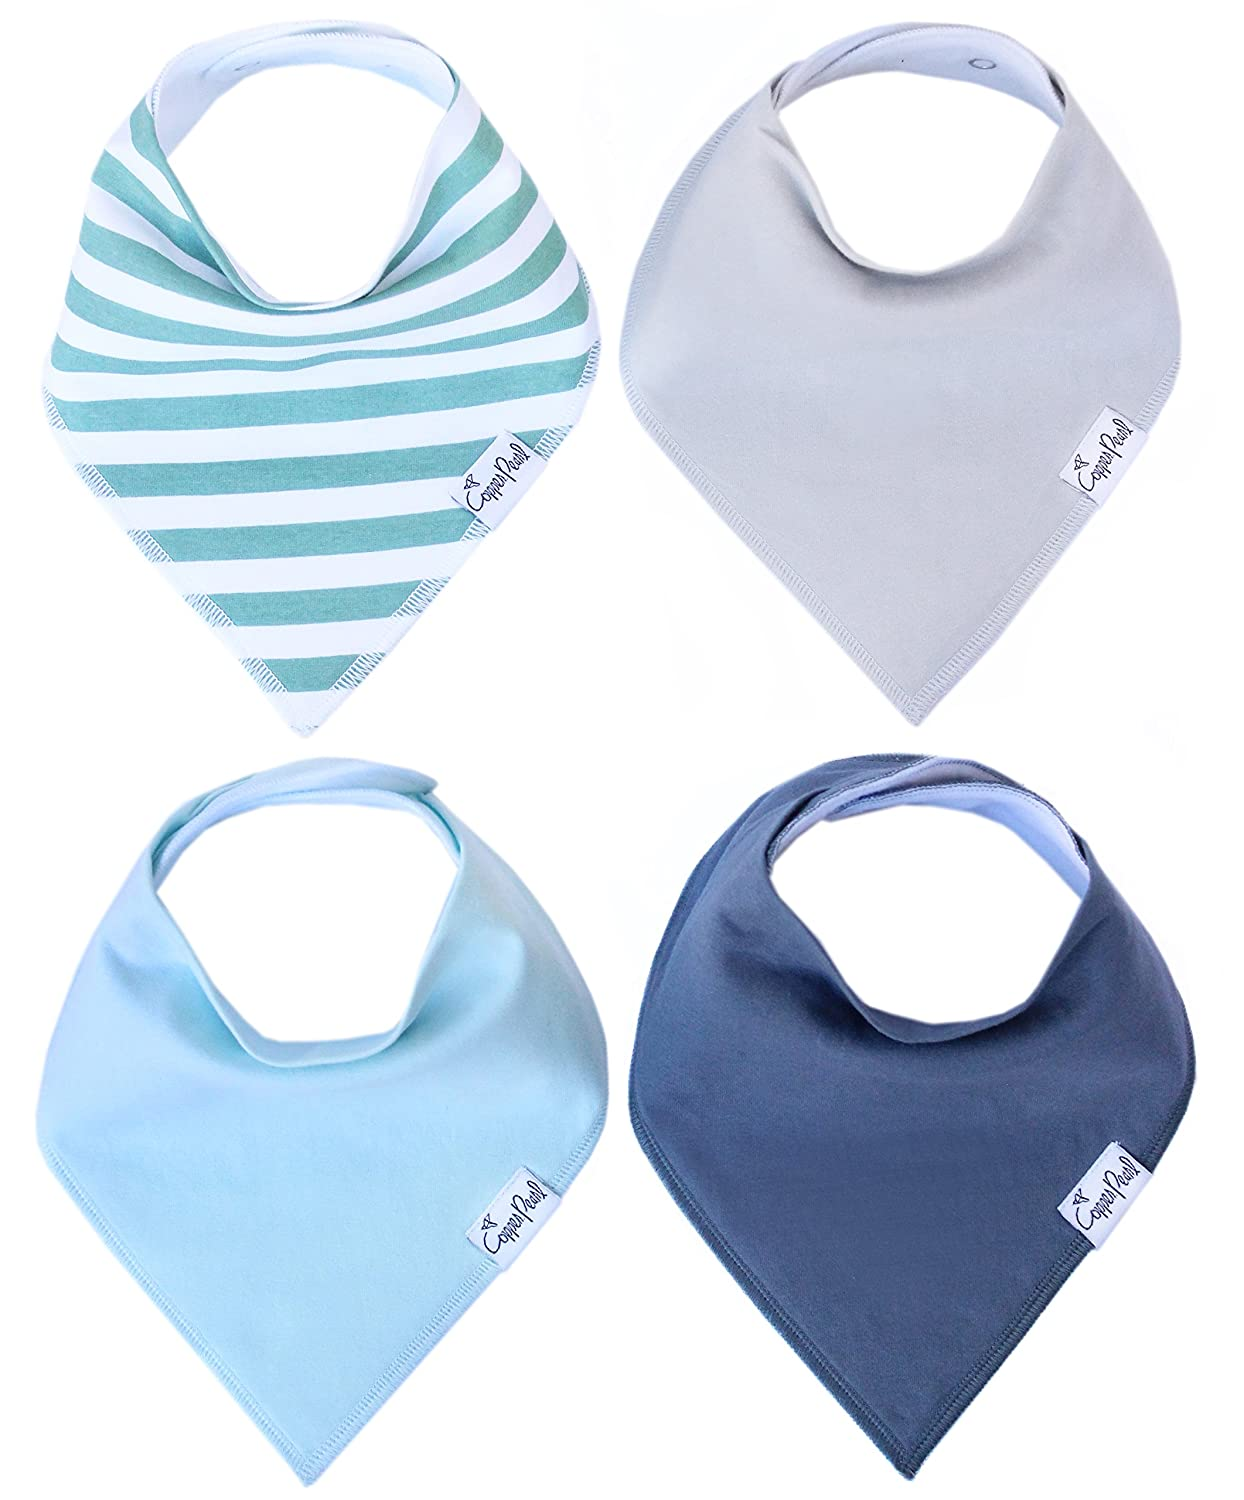 "Baby Bandana Drool Bibs for Drooling and Teething 4 Pack Gift Set For Boys ""Oxford Set"" by Copper Pearl"